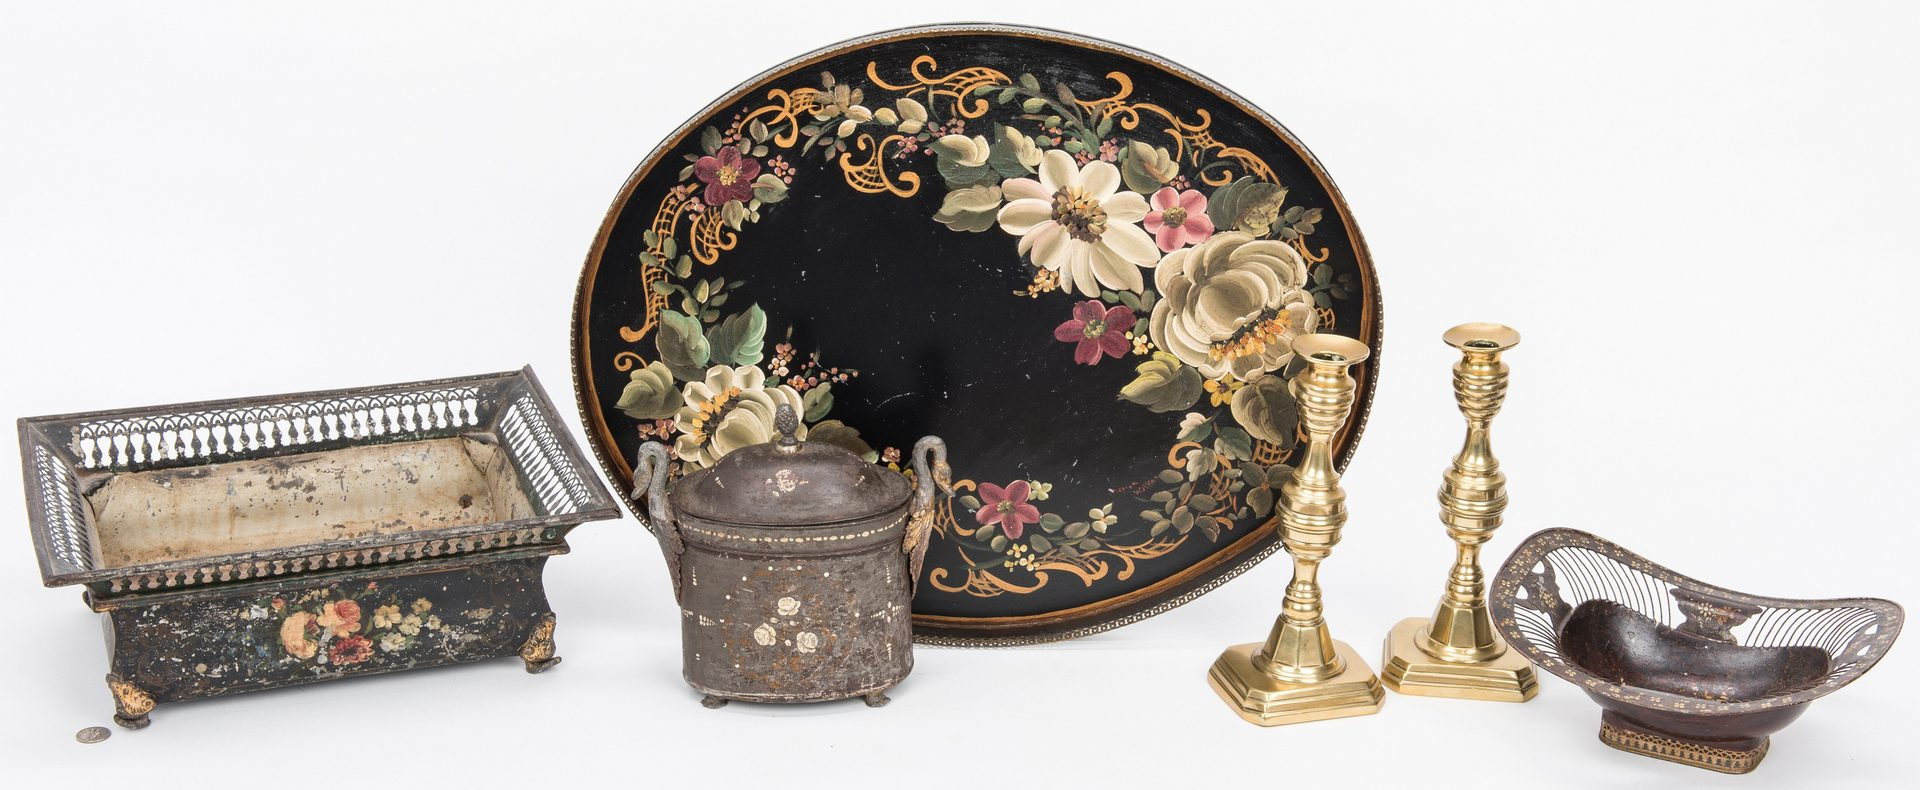 Lot 108: 4 Toleware Items & Pr. Brass Candlesticks